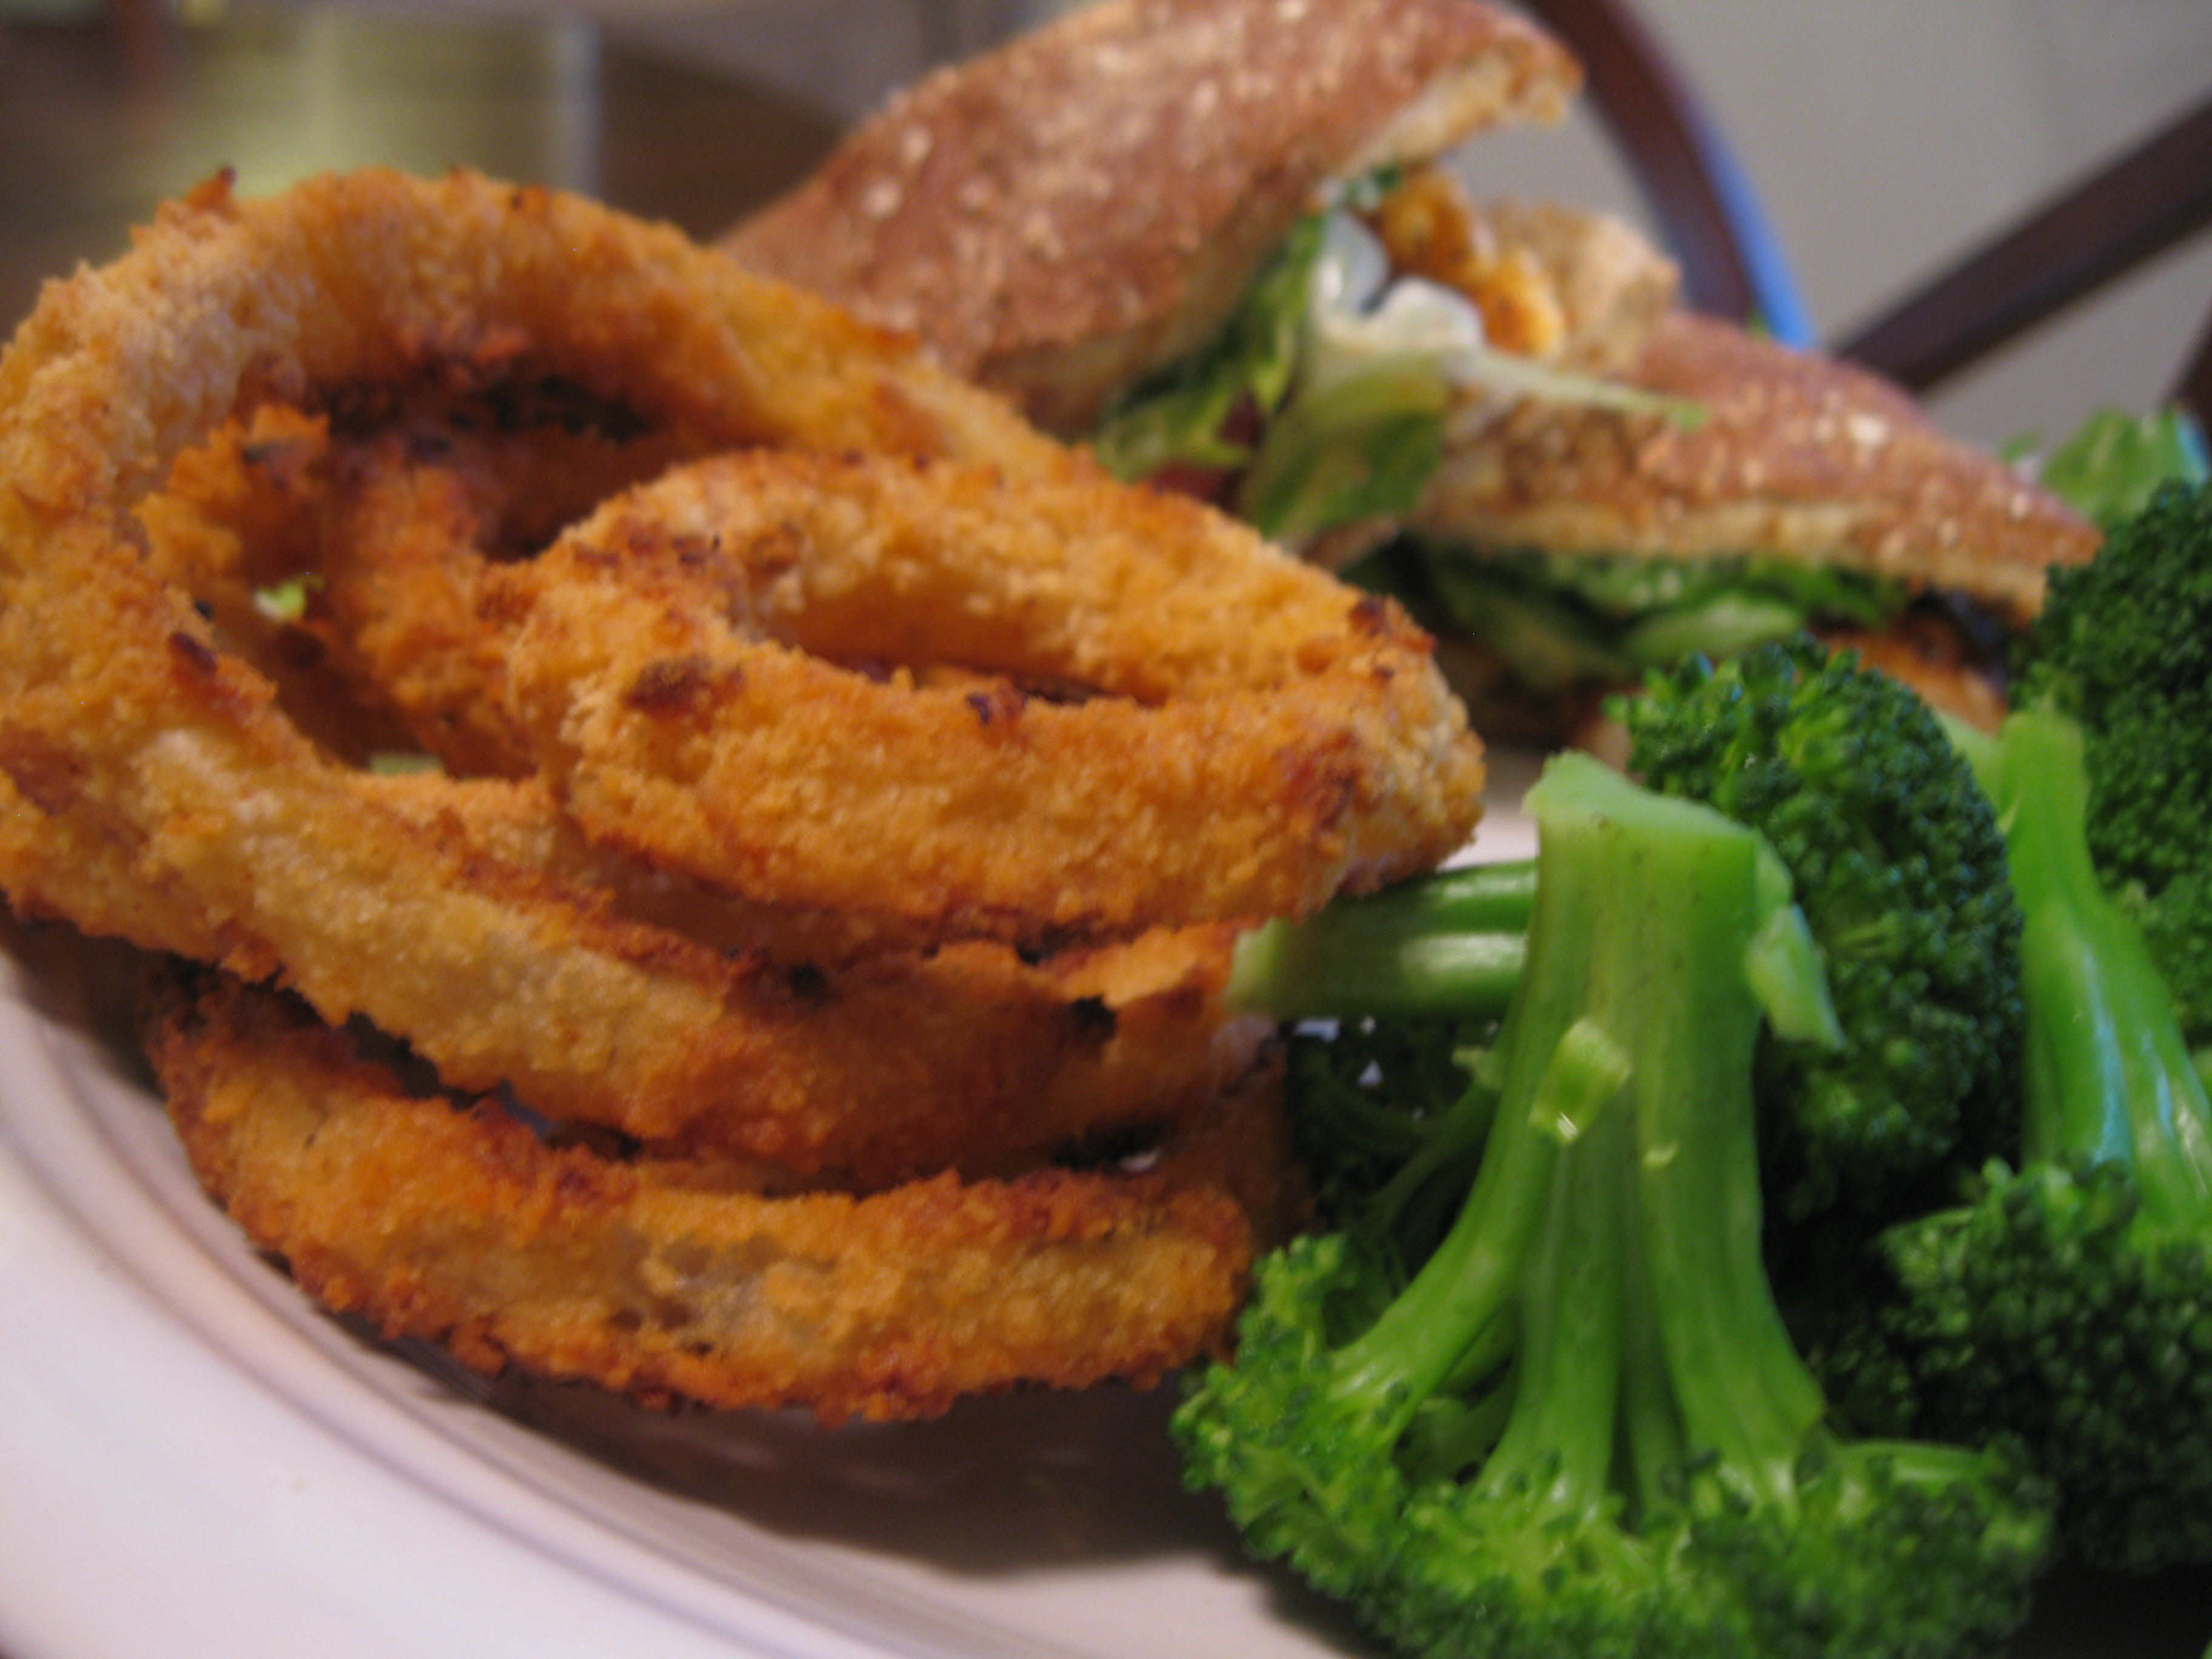 Recipe 27.4: Blackened Chicken Sandwiches with Onion Rings and Broccoli